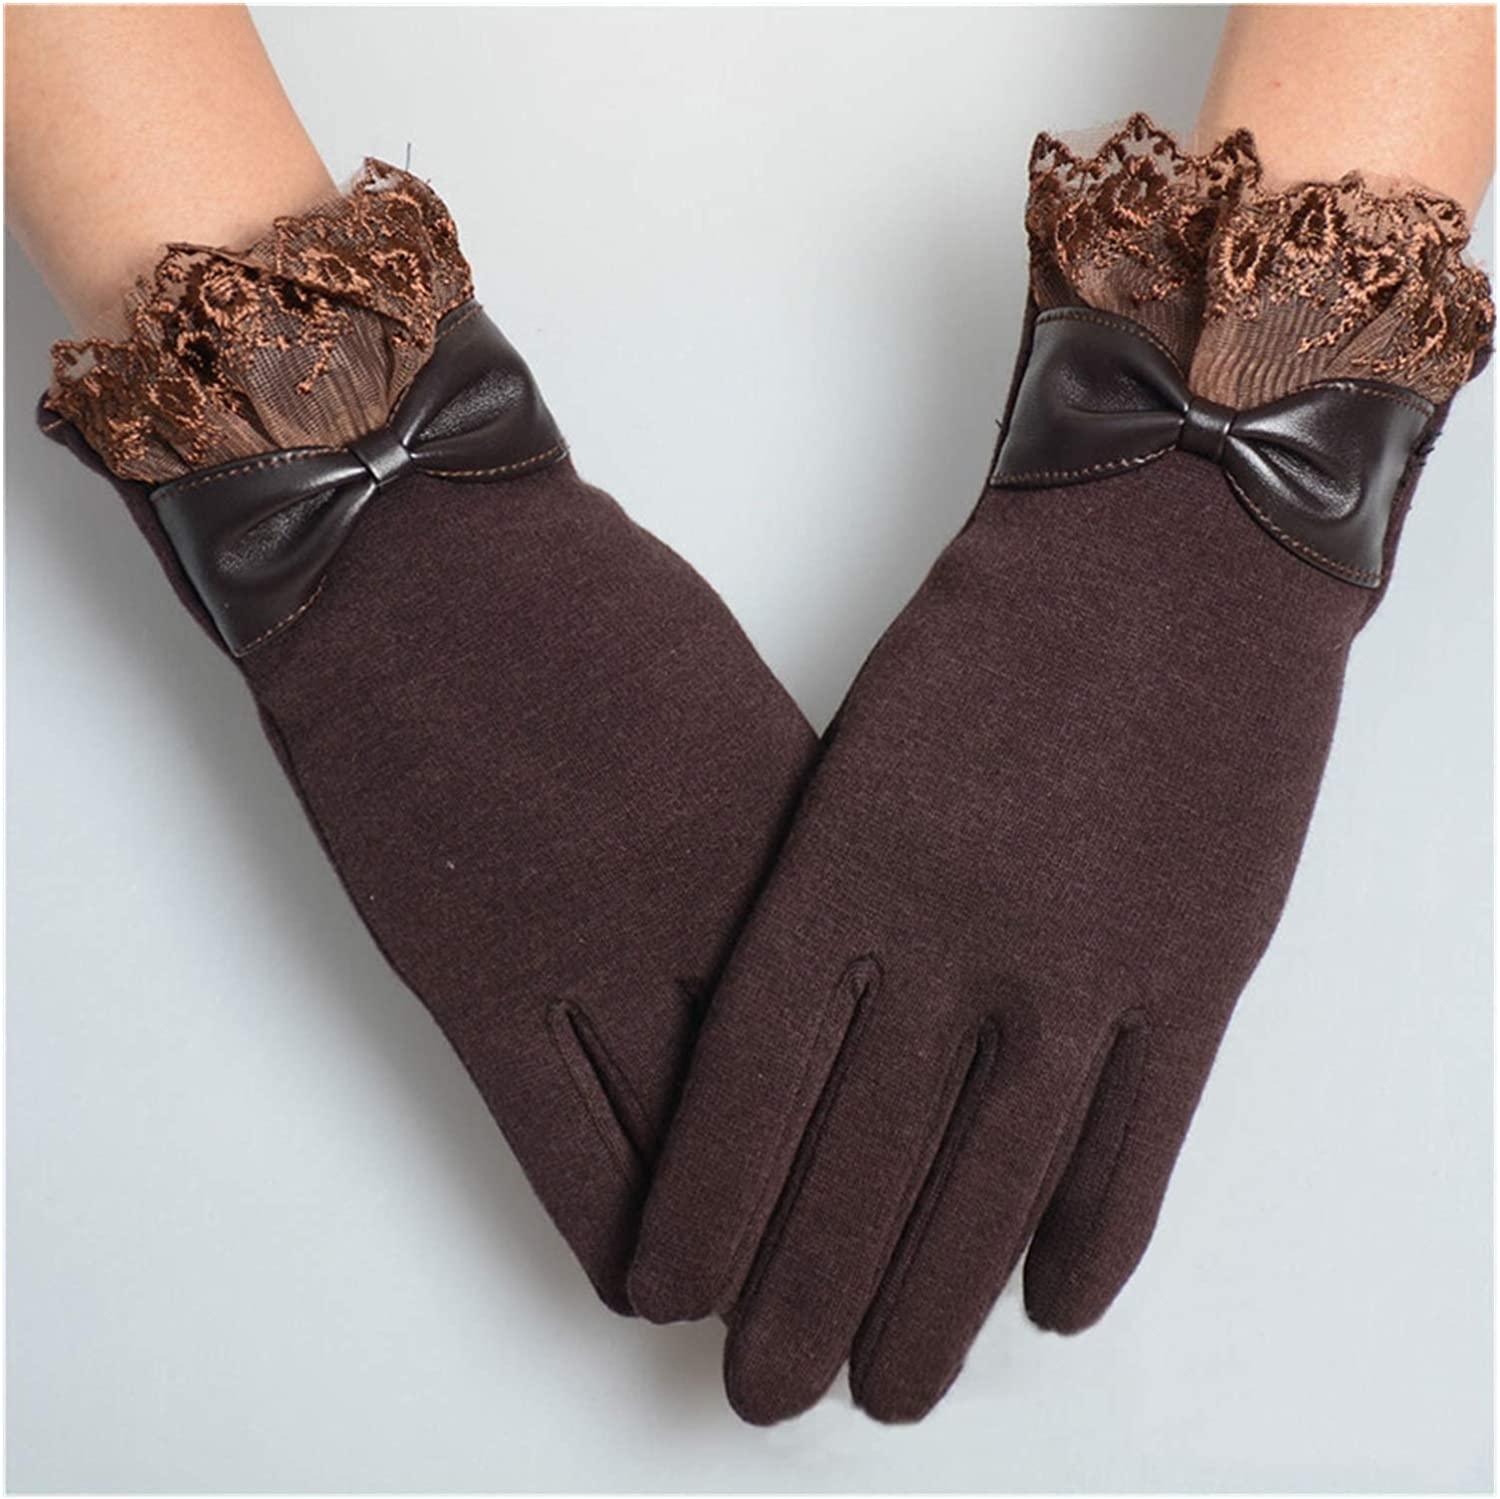 QIANXIMY Bridal Gloves Elegant Womens Gloves Fashion Winter Warm Bow Soft Wrist Lace Gloves Mittens Cashmere Full Finger (Color : Coffee, Gloves Size : One Size)